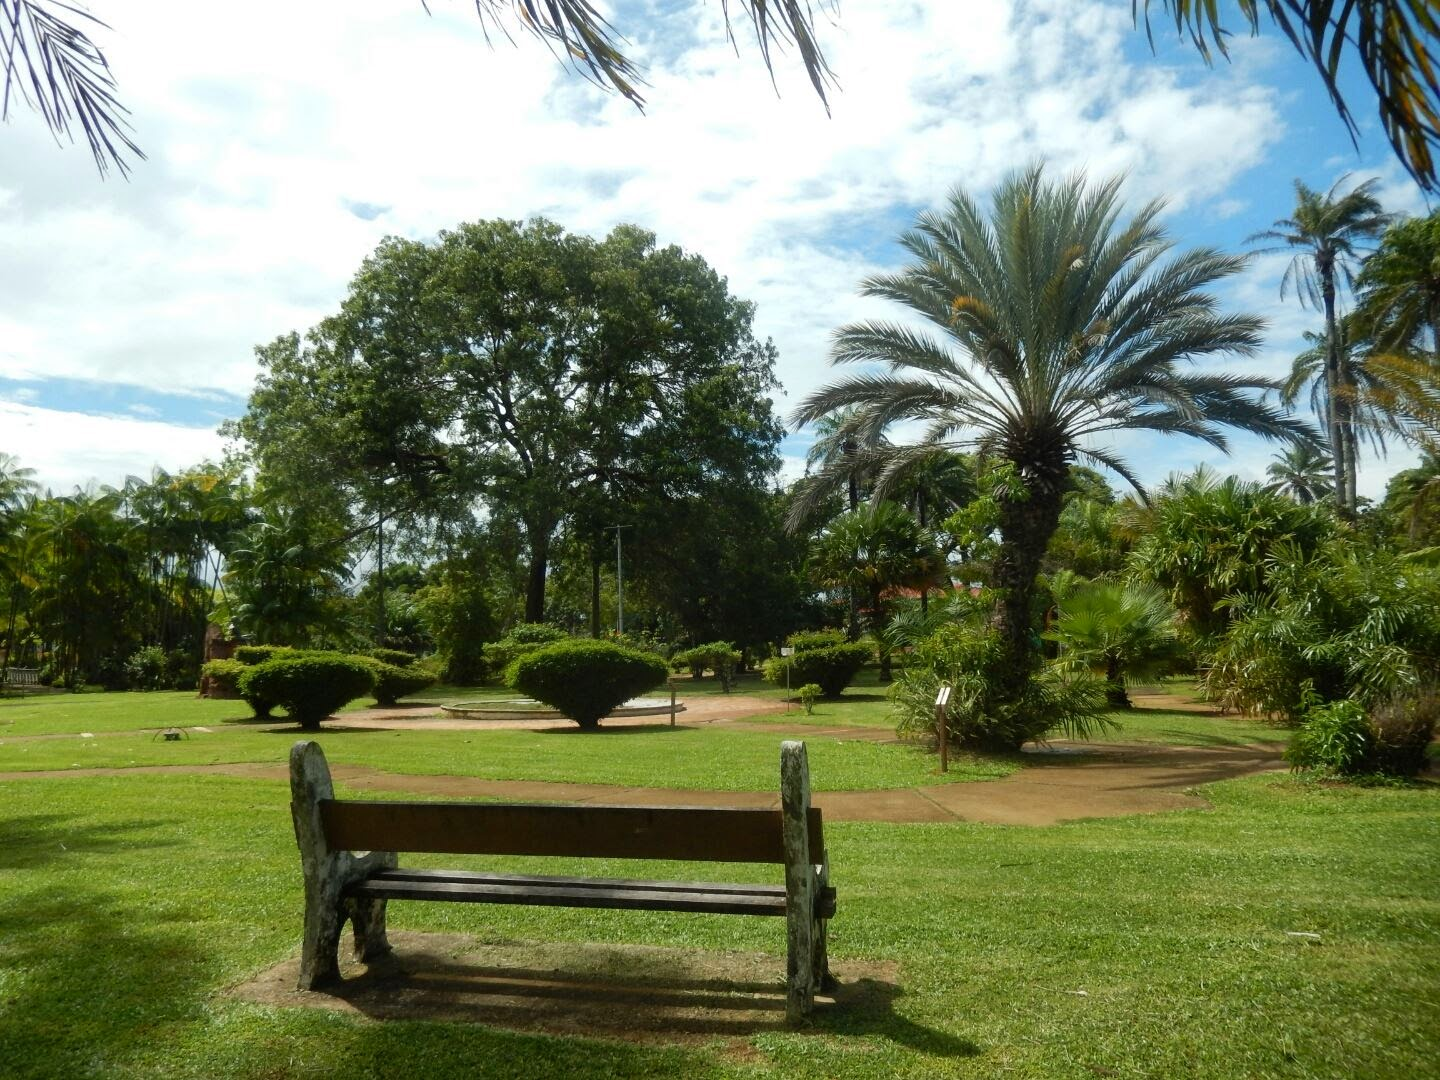 jardin botanique de cayenne cayenne site internet du ctg comit du tourisme de guyane. Black Bedroom Furniture Sets. Home Design Ideas